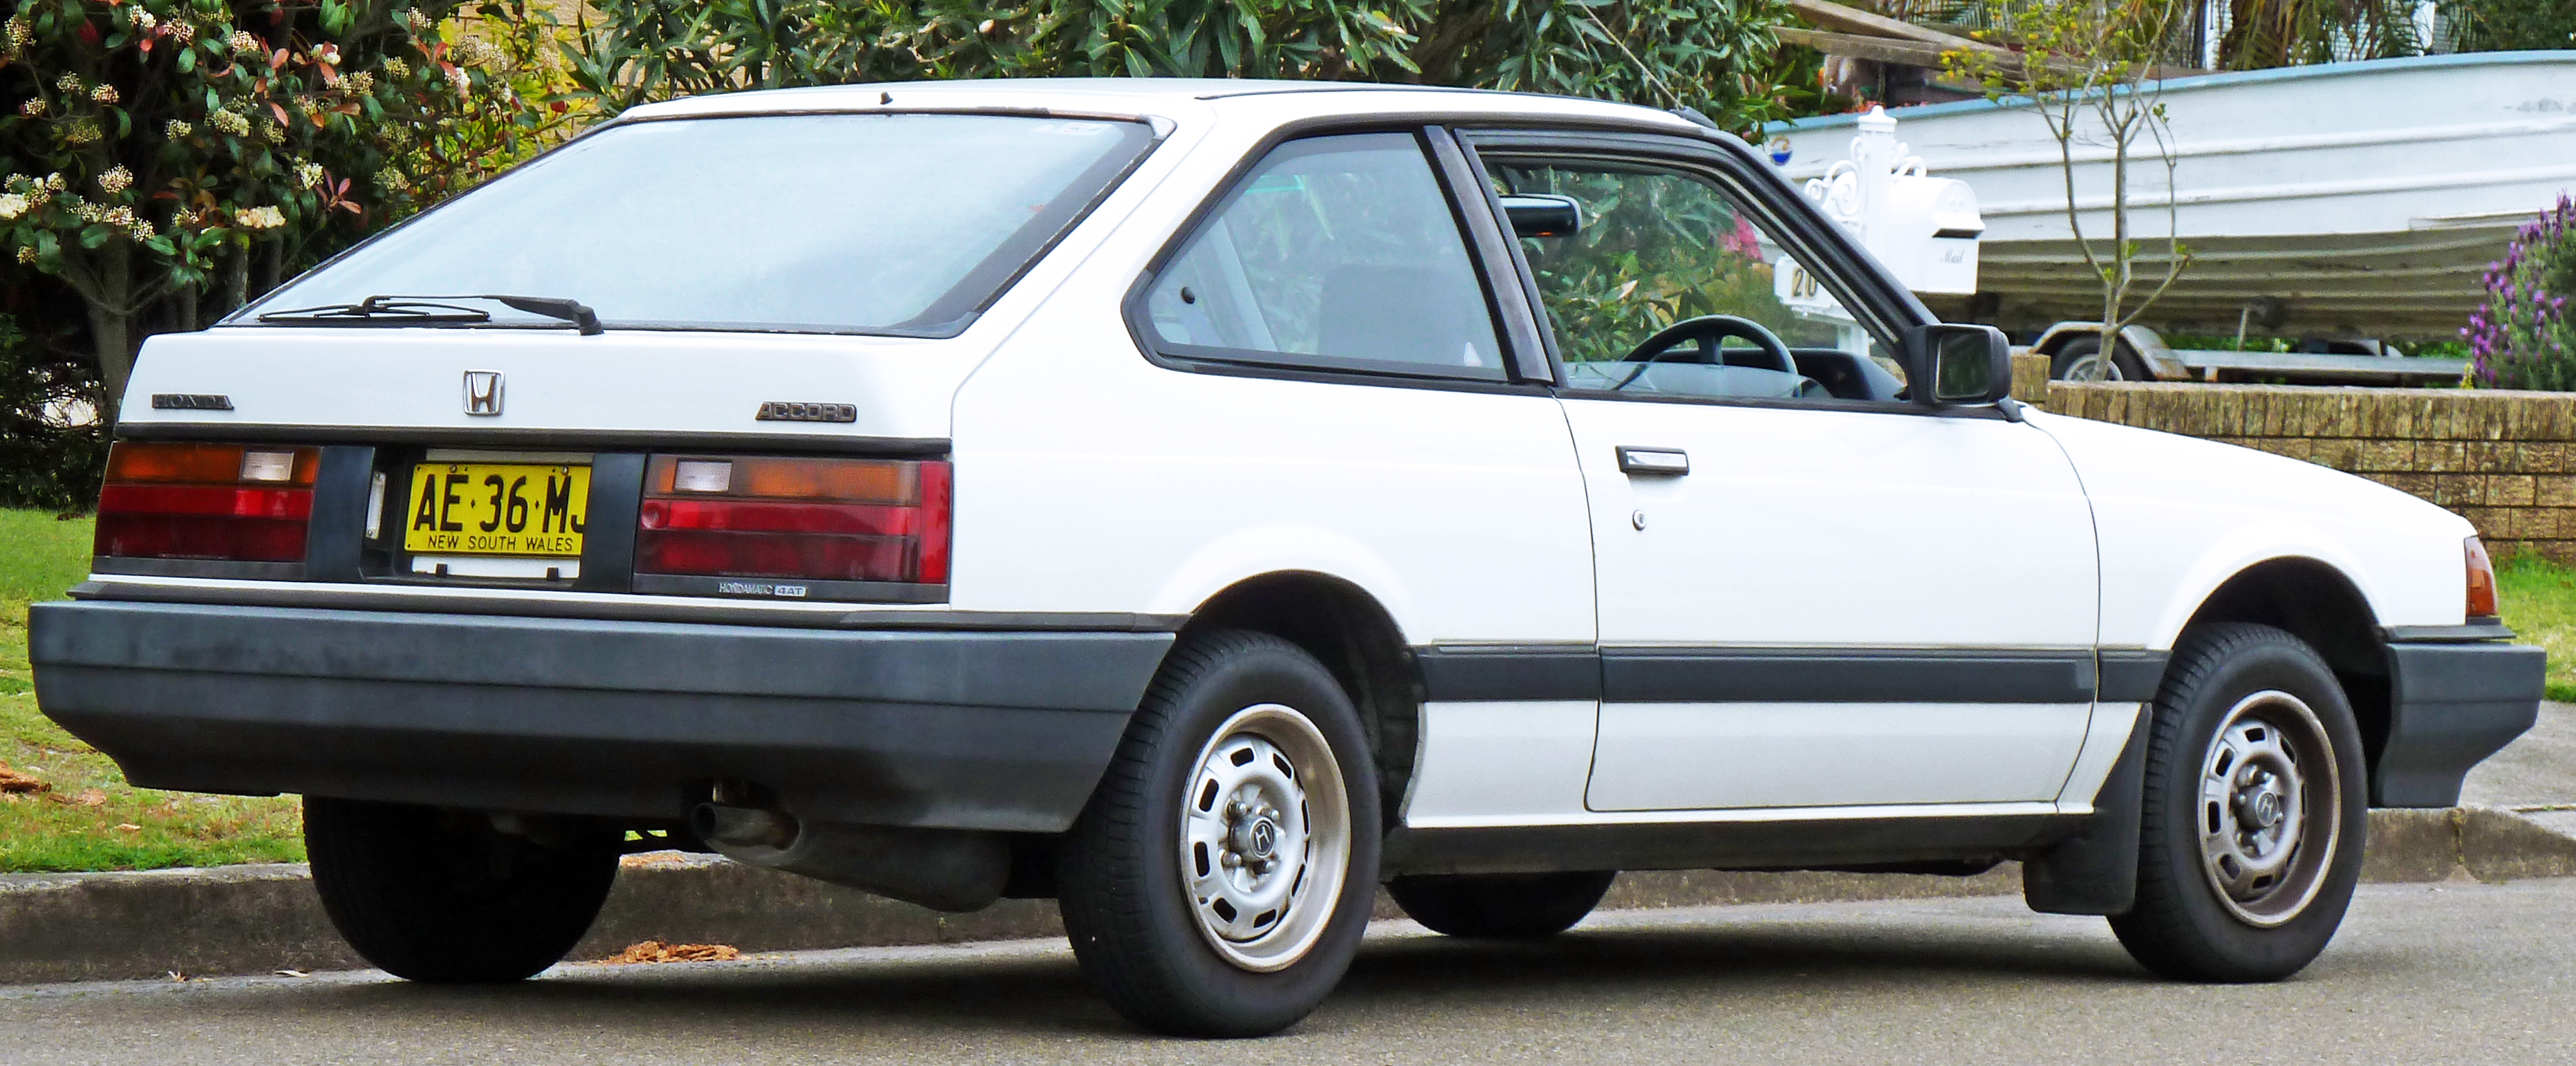 1985 Honda Accord lx File:1984-1985 Honda Accord